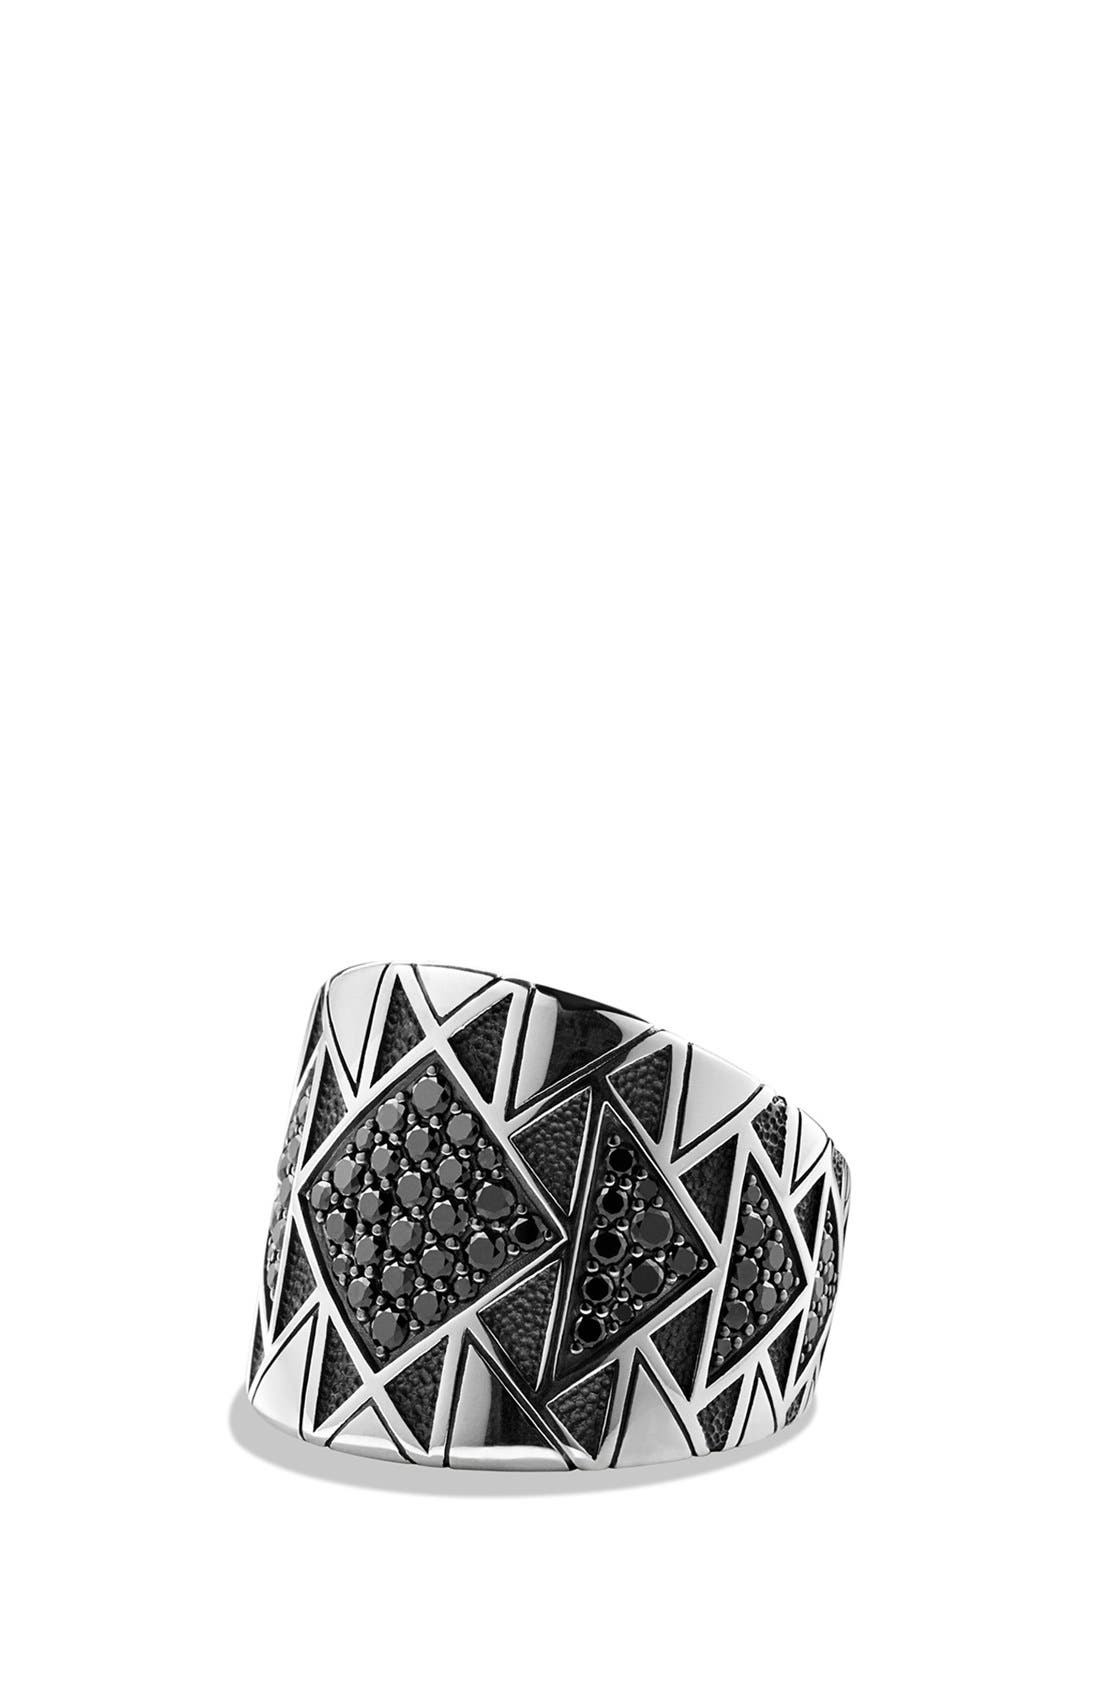 DAVID YURMAN 'Frontier' Signet Ring with Black Diamonds